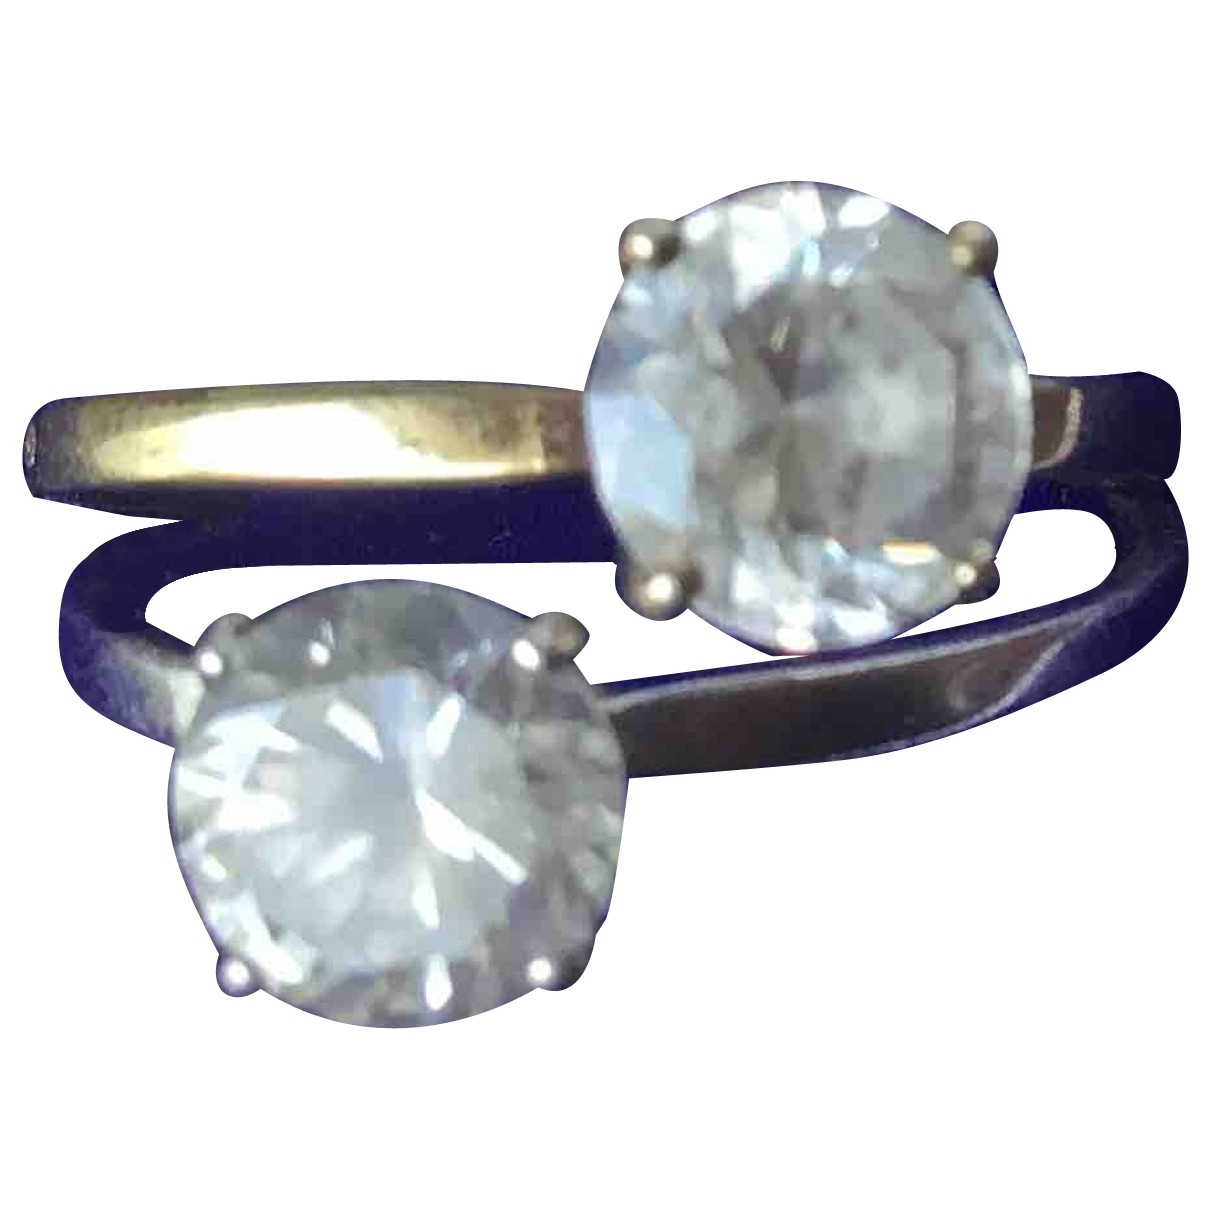 Non Signe / Unsigned Chevalieres Ring in Silber